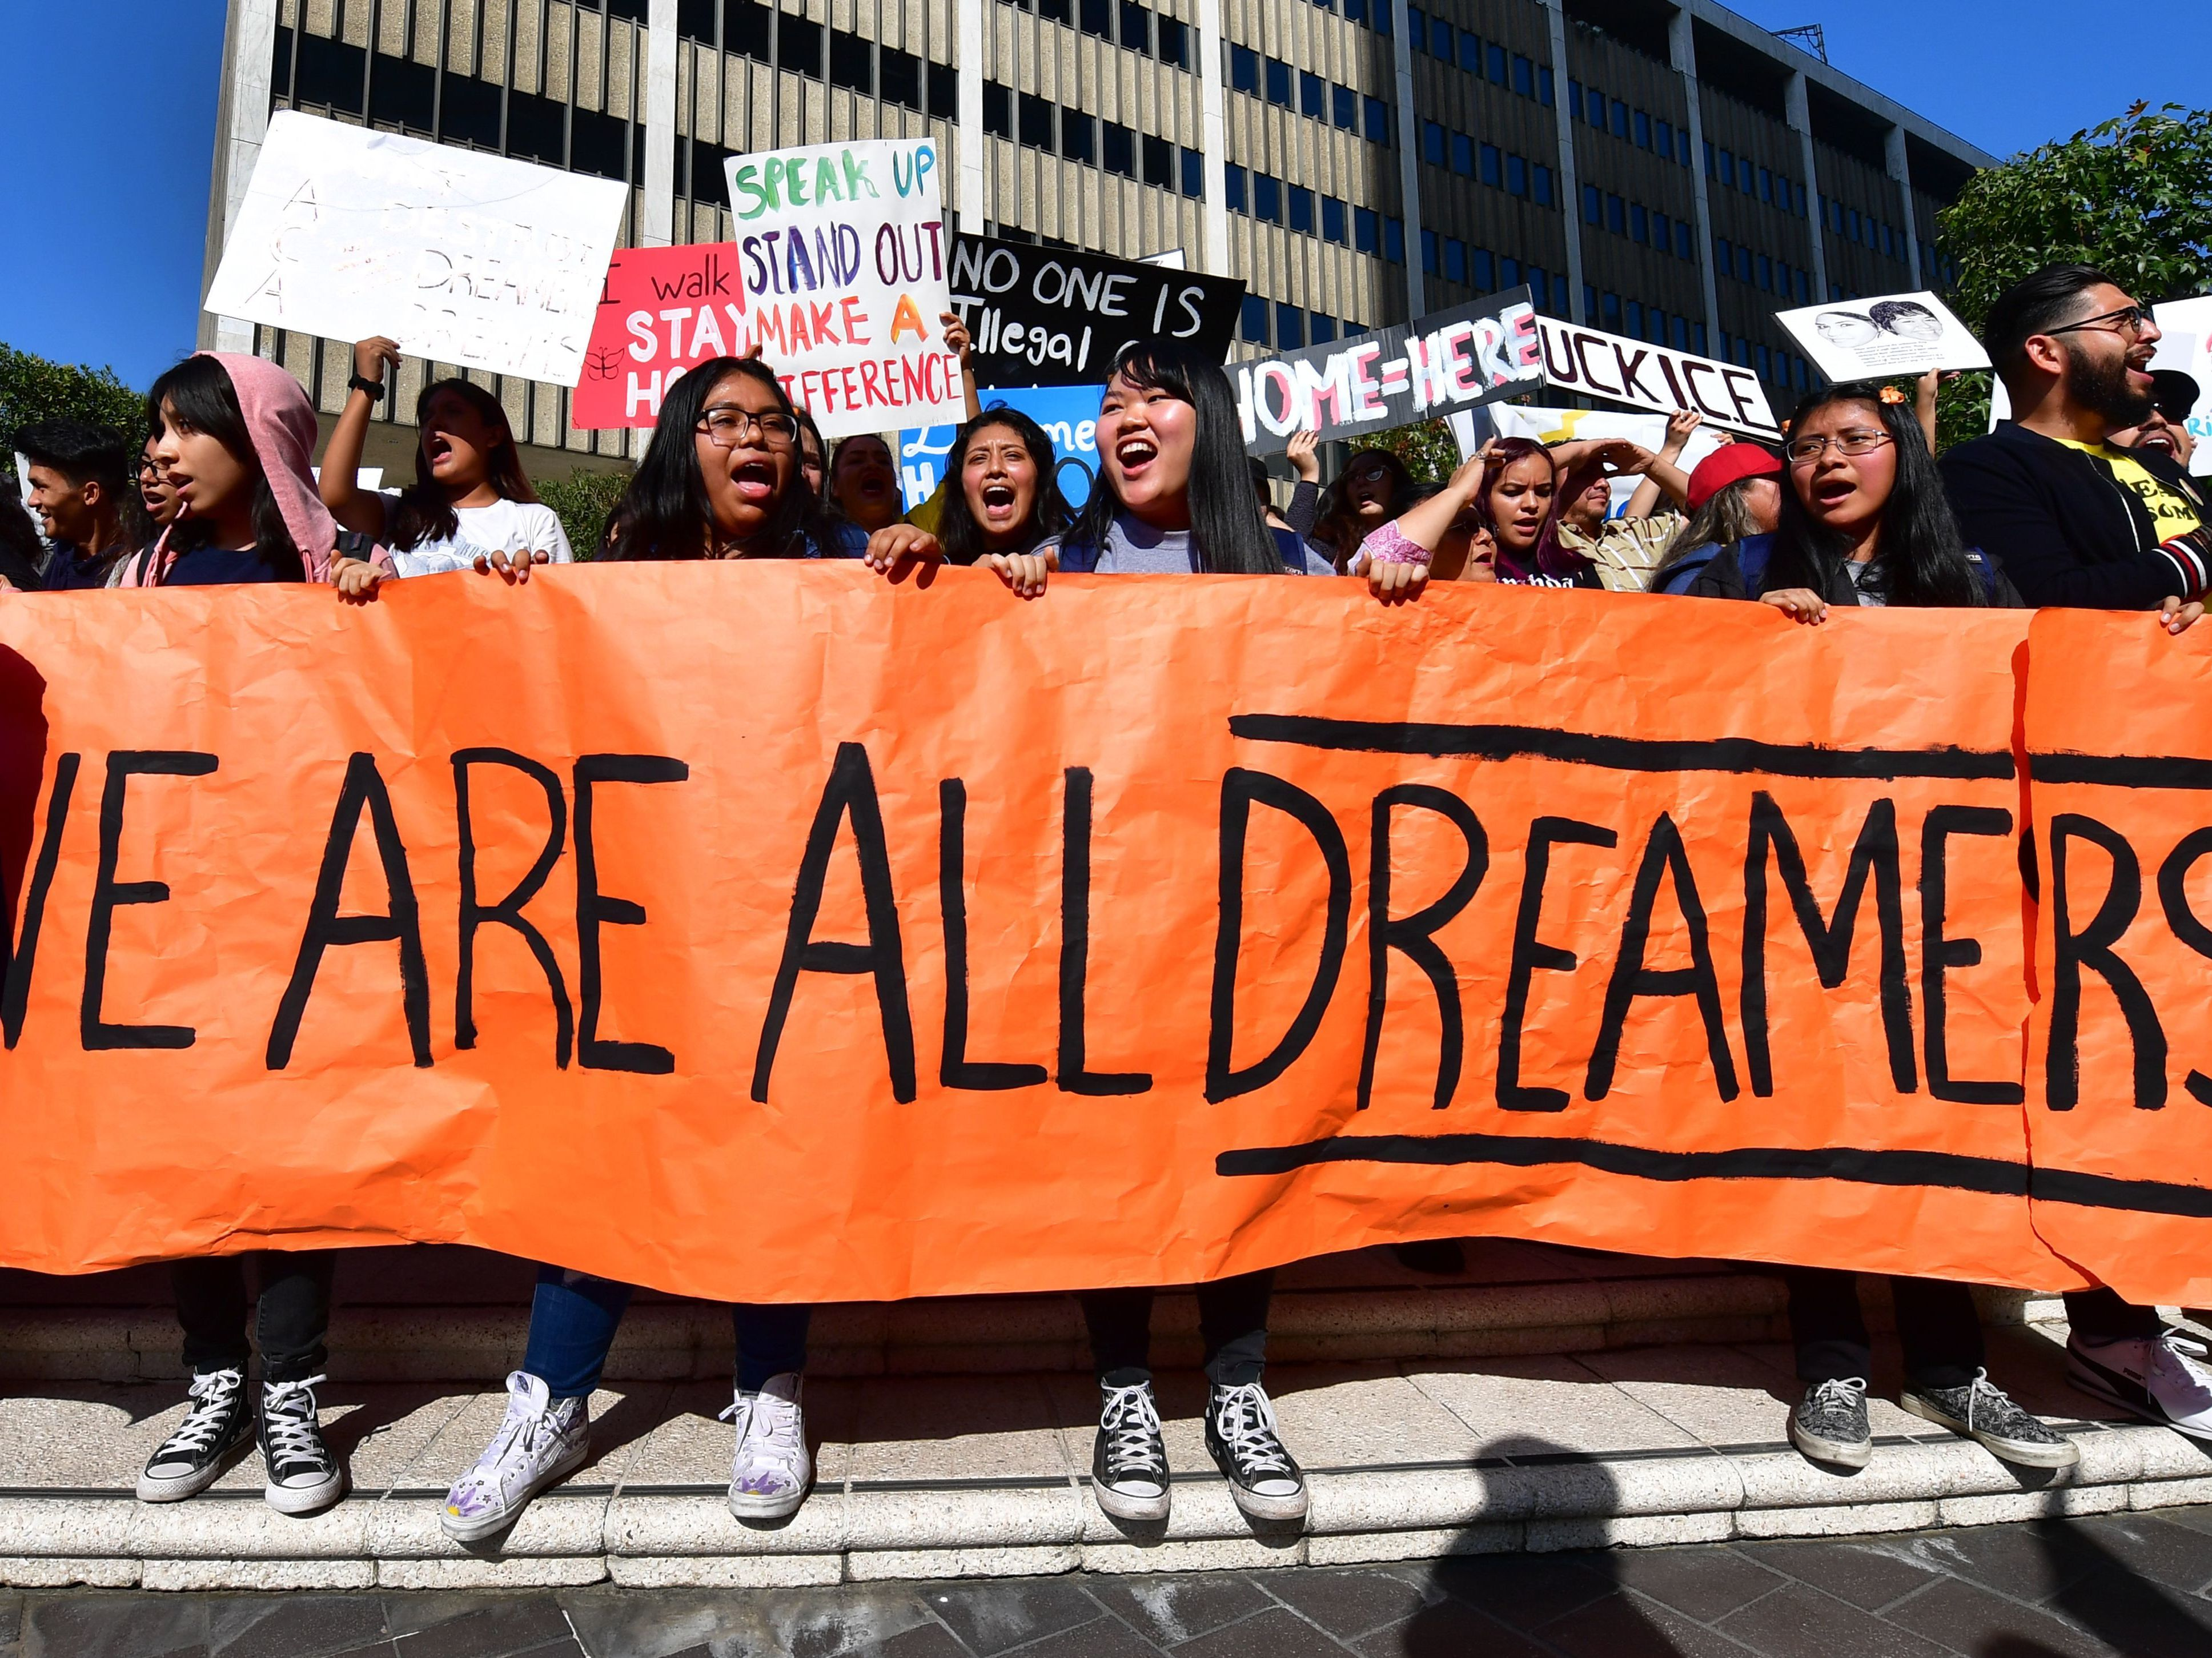 Sigh Of Relief' Or 'Slippery Slope': Advocates and Opponents React To DACA  Ruling : NPR